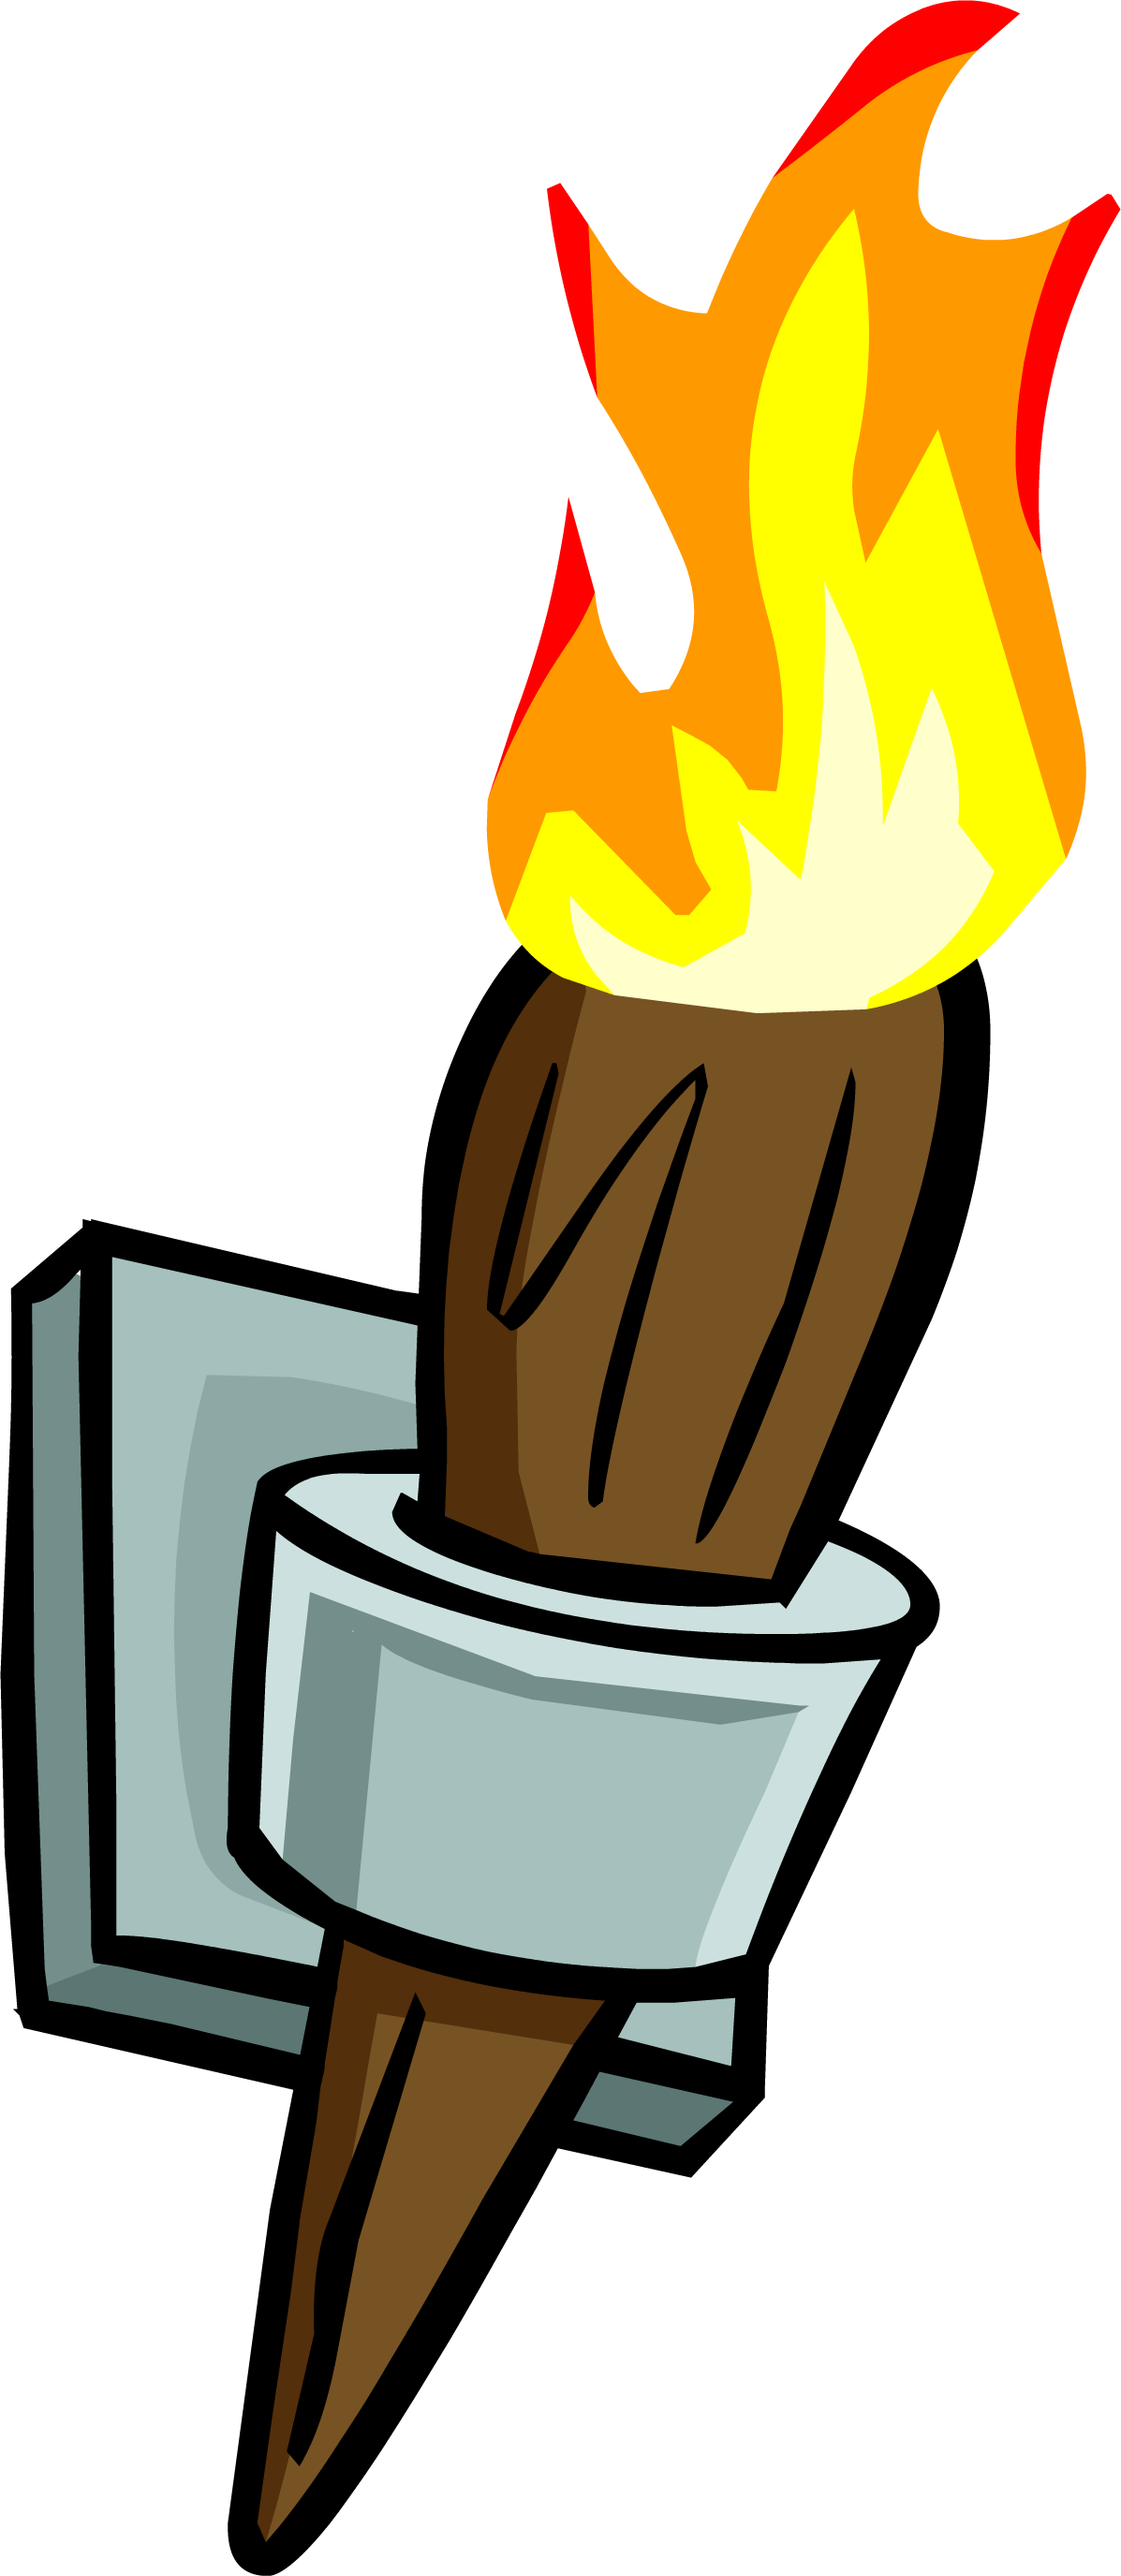 Image wall sprite png. Torch clipart torch book